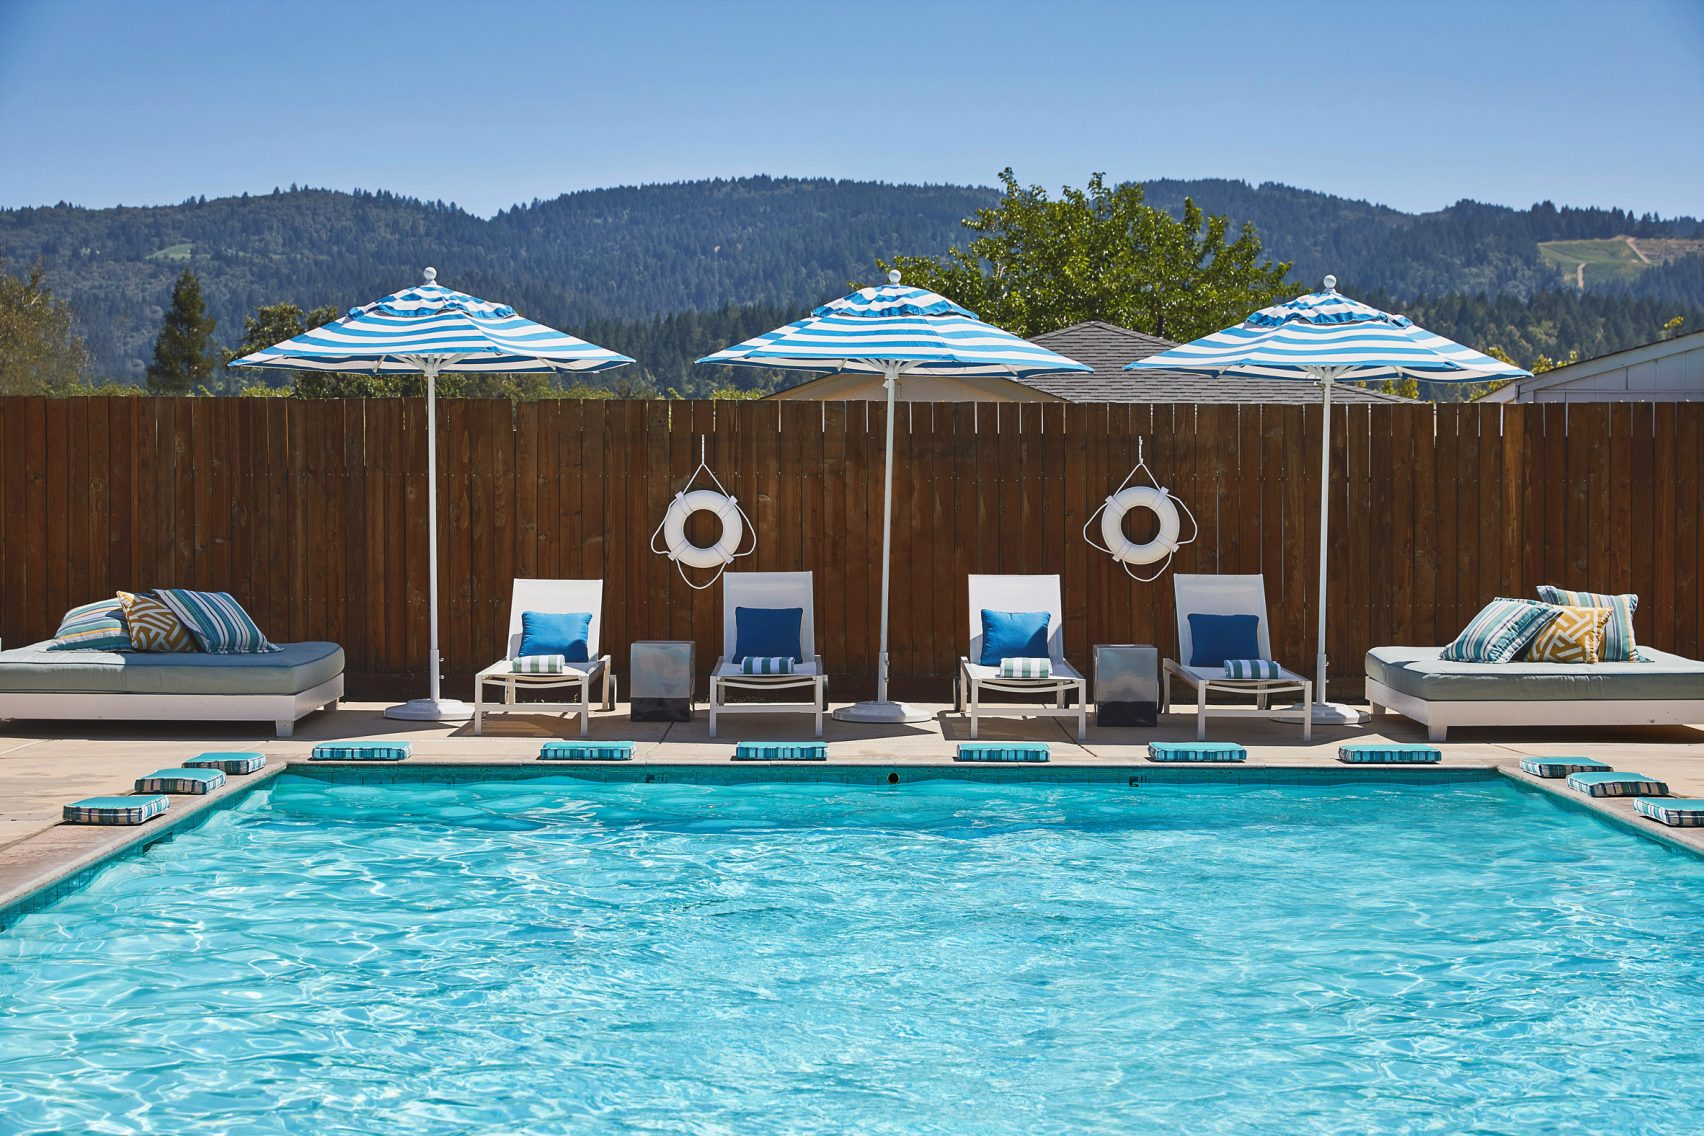 calistoga-motor-lodge-spa-wes-anderson